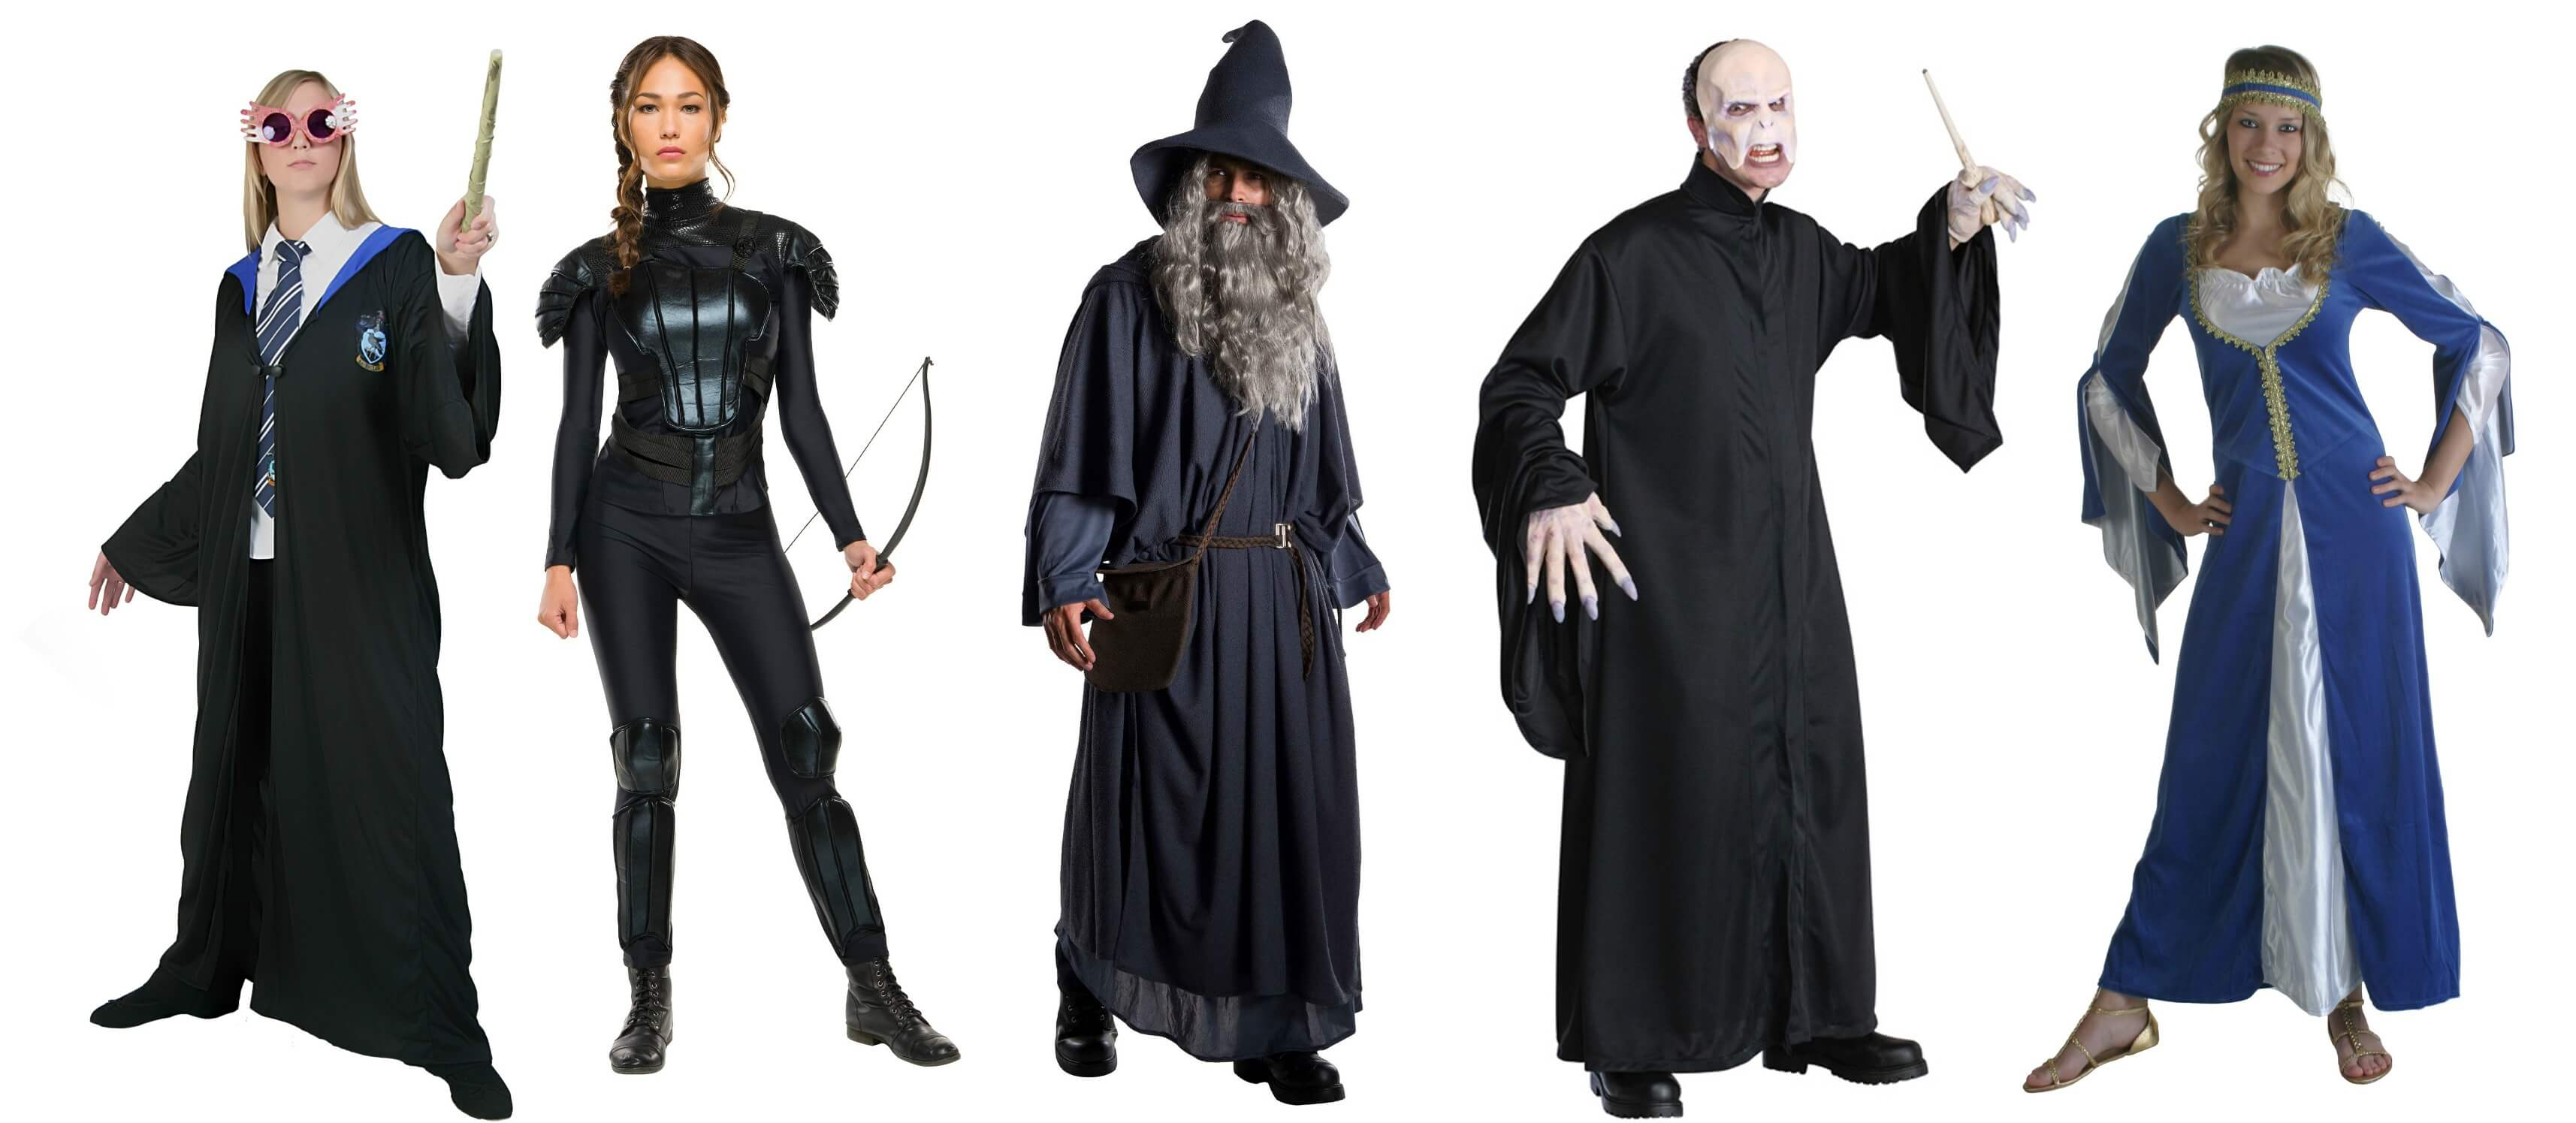 Halloween Costumes for Teachers - Halloween Costumes Blog